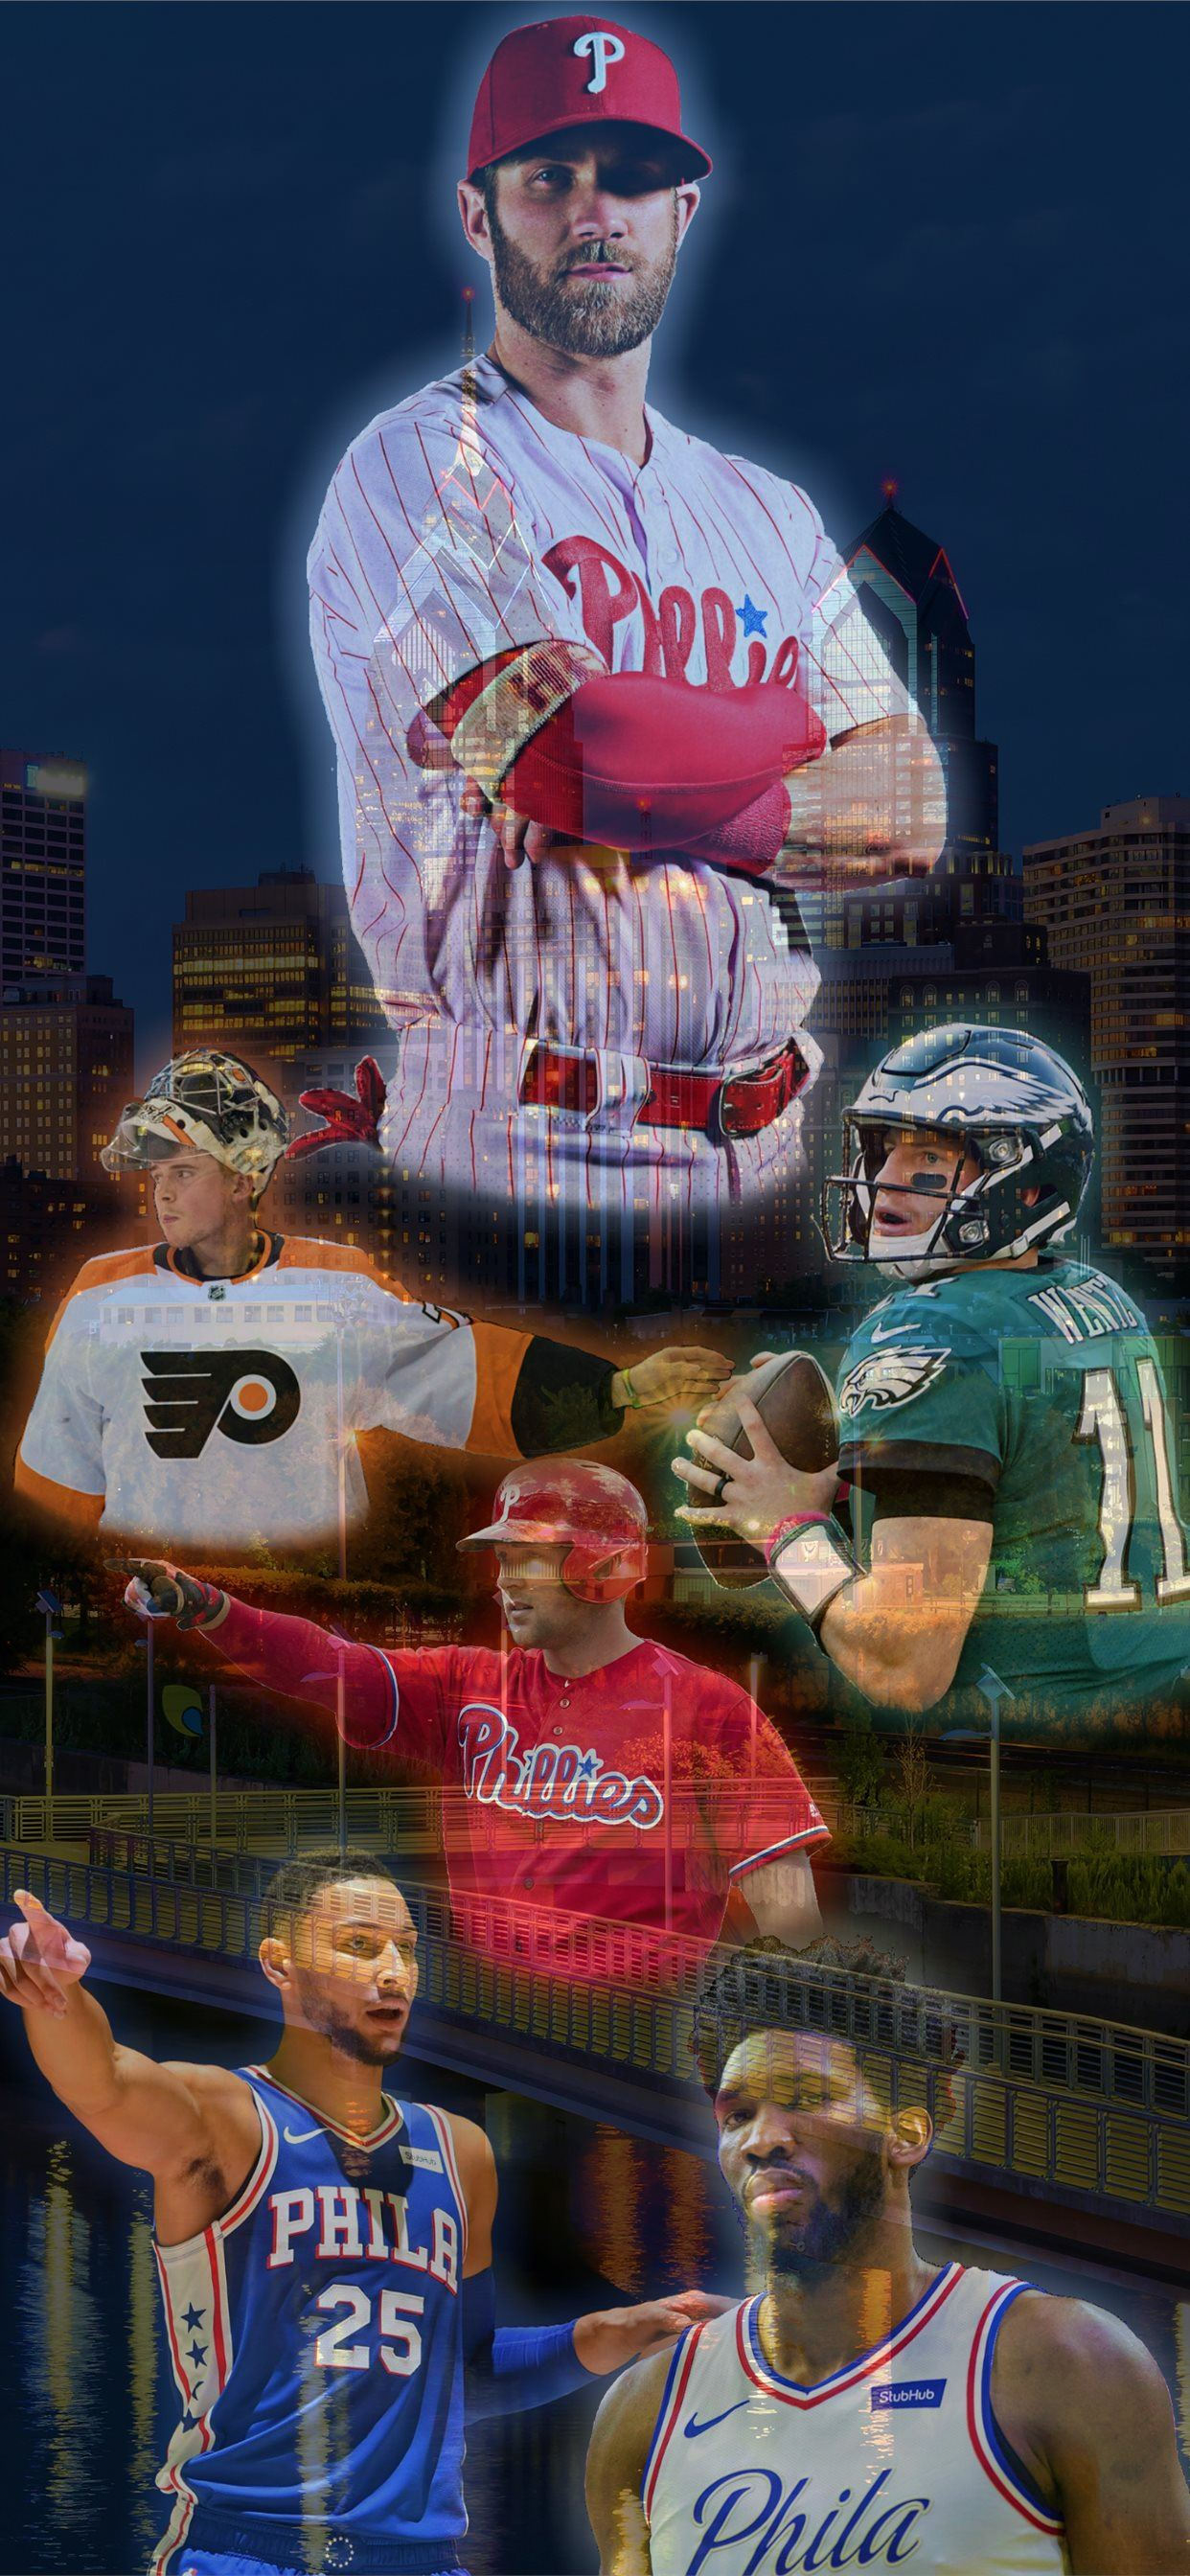 This is my second Future of Philly Made for the iPhone SE wallpaper